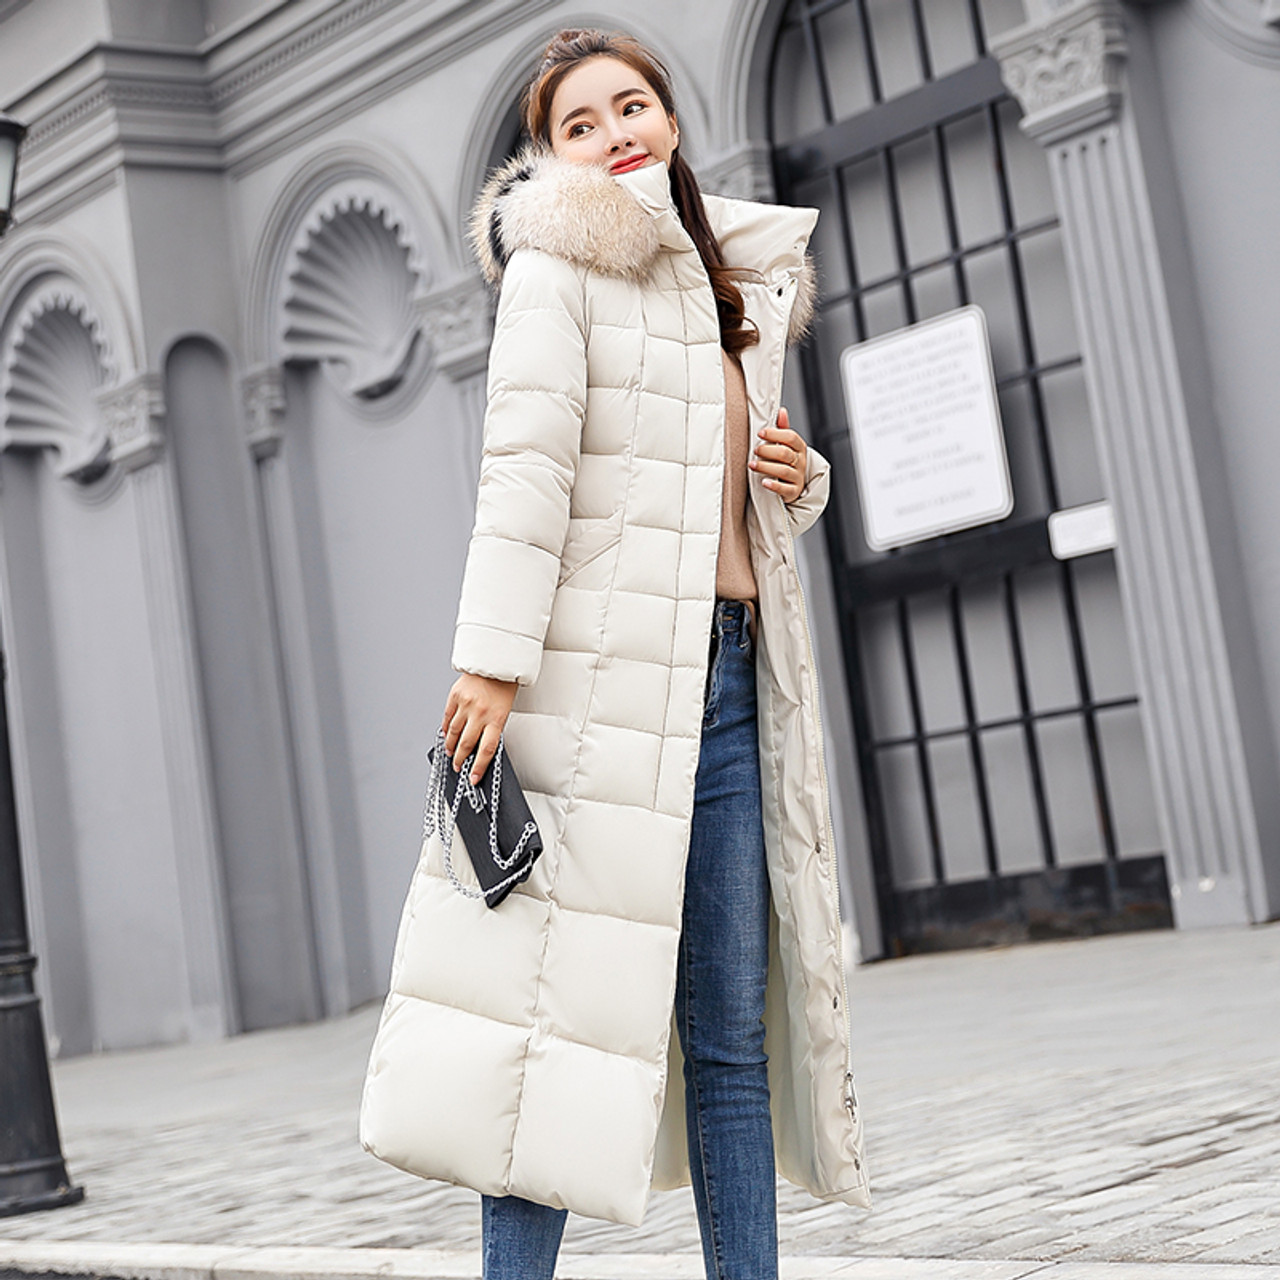 10b039cd5 New Winter Women Long Cotton Parkas Large Fur Collar Hooded Coat Casual  Padded Warm Jackets Wadded Snow Overcoat